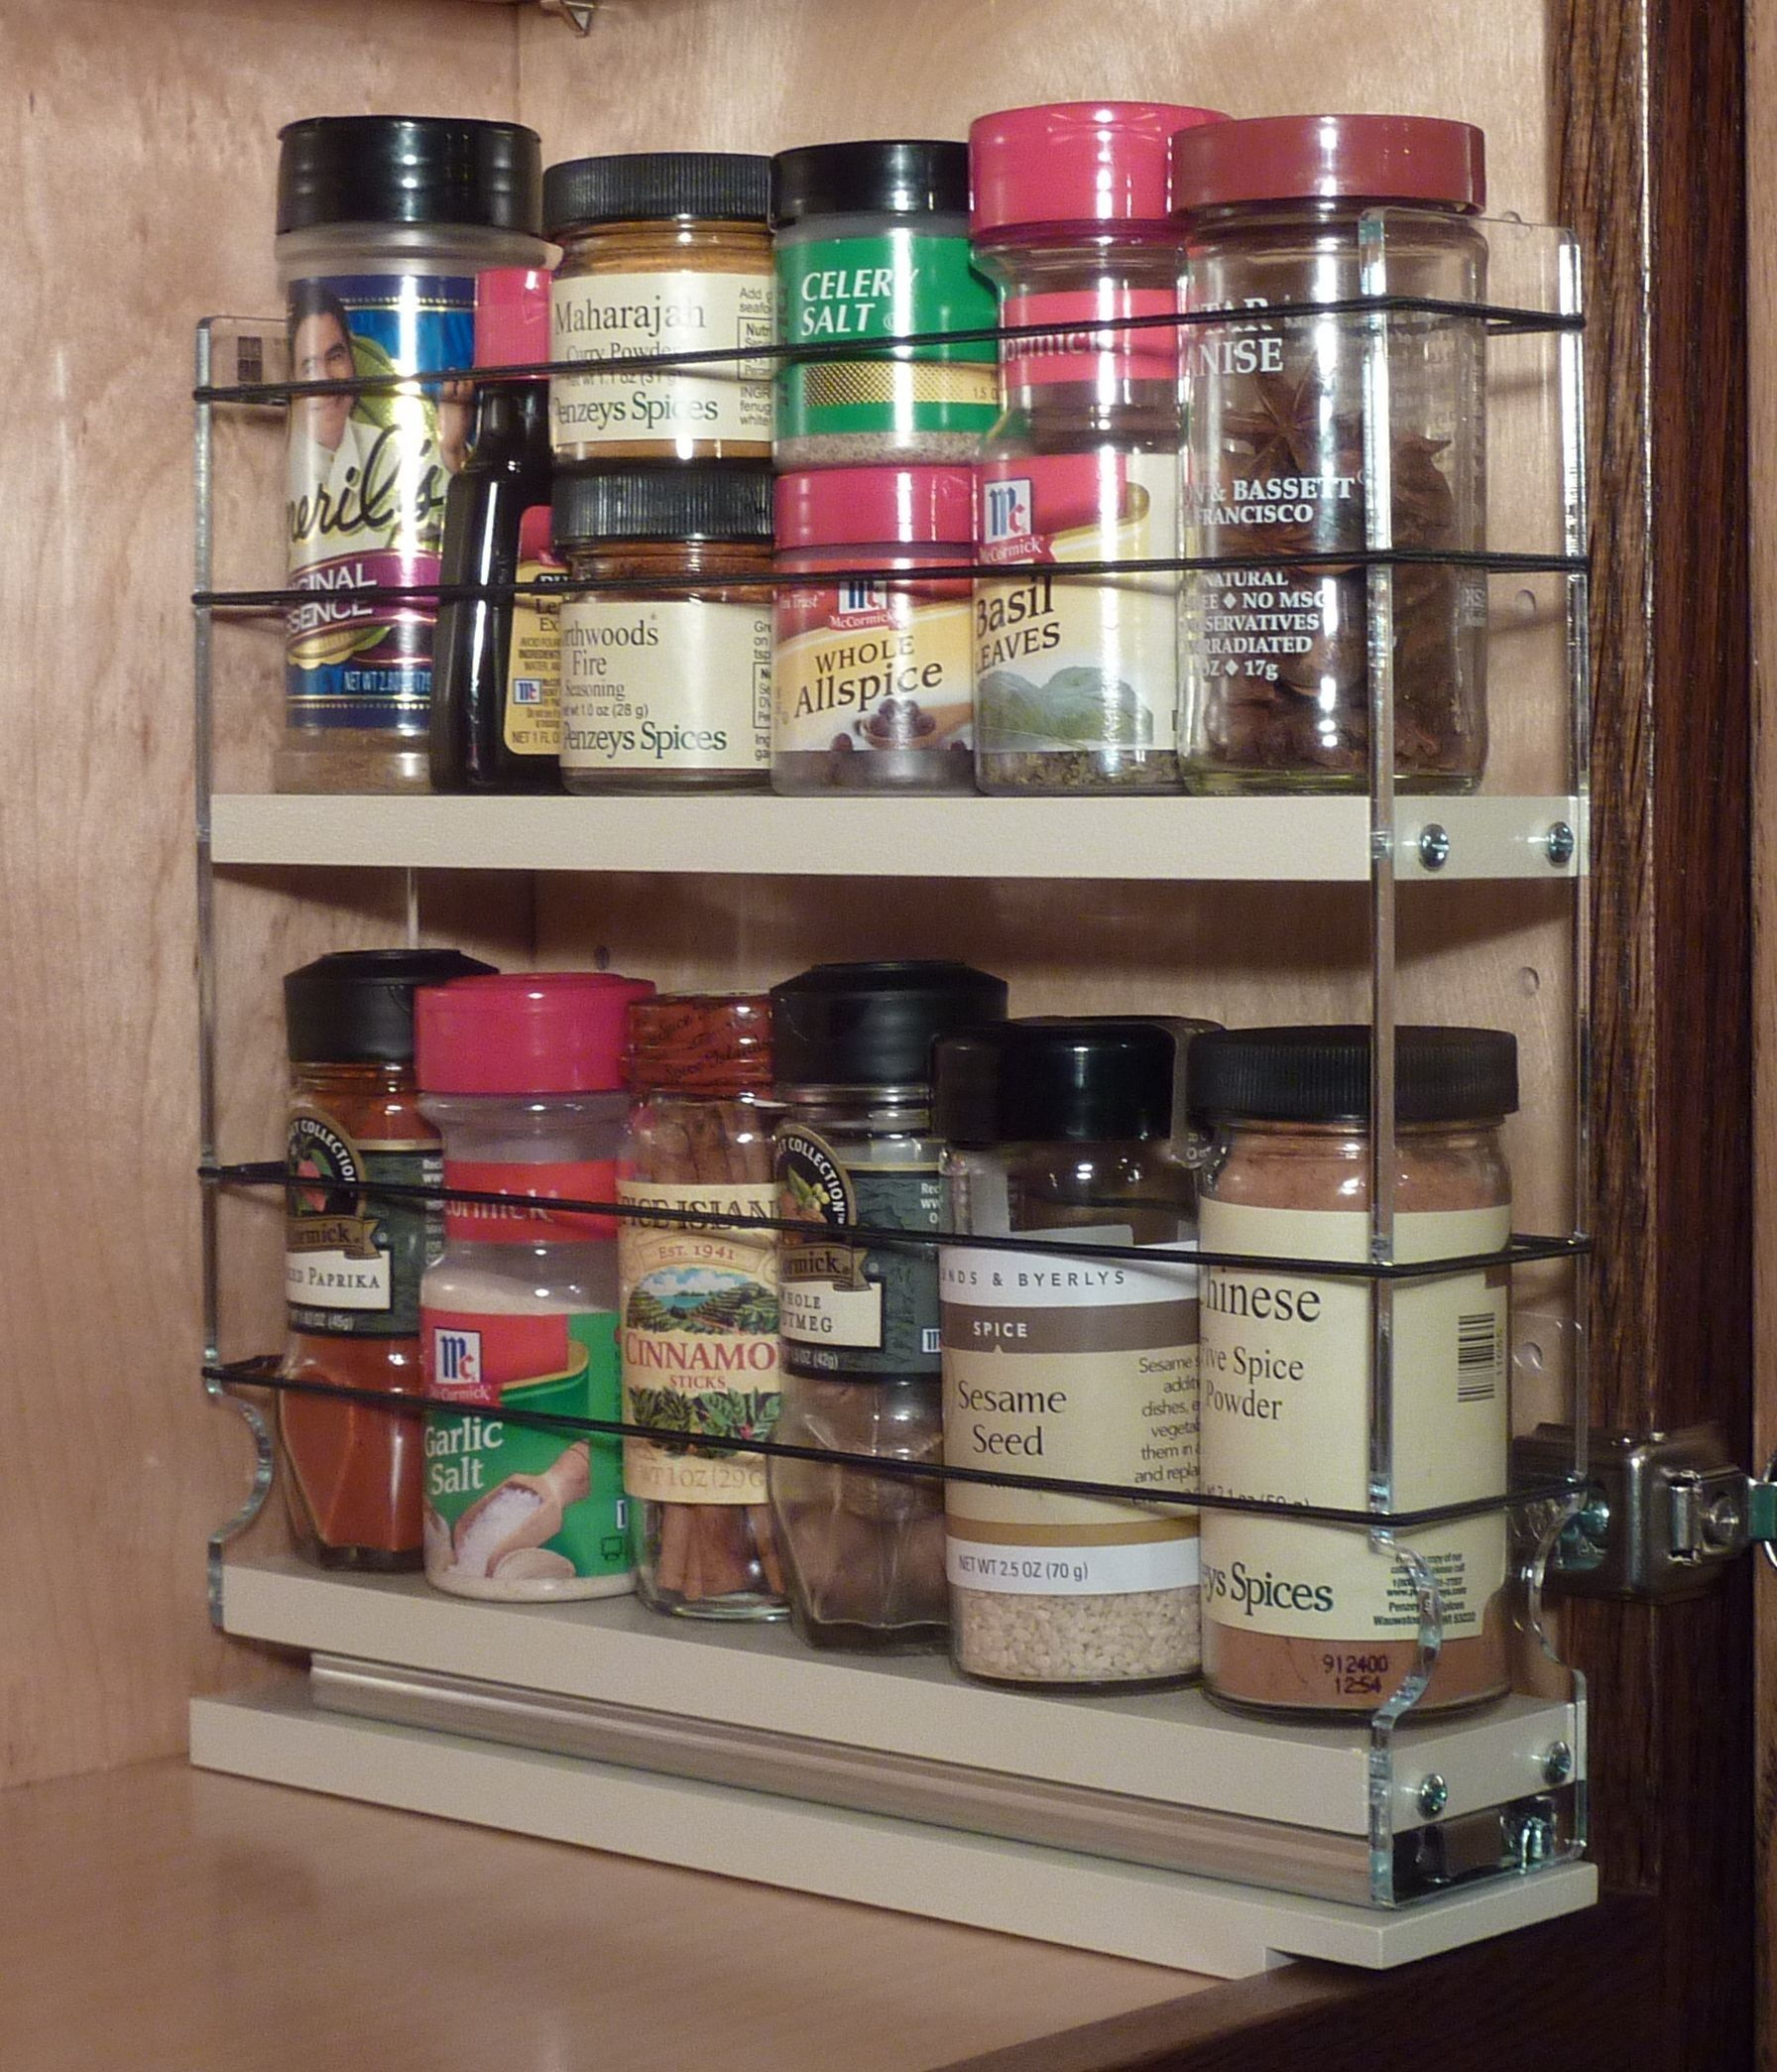 Spice Rack Narrow Space 12 Capacity Drawer